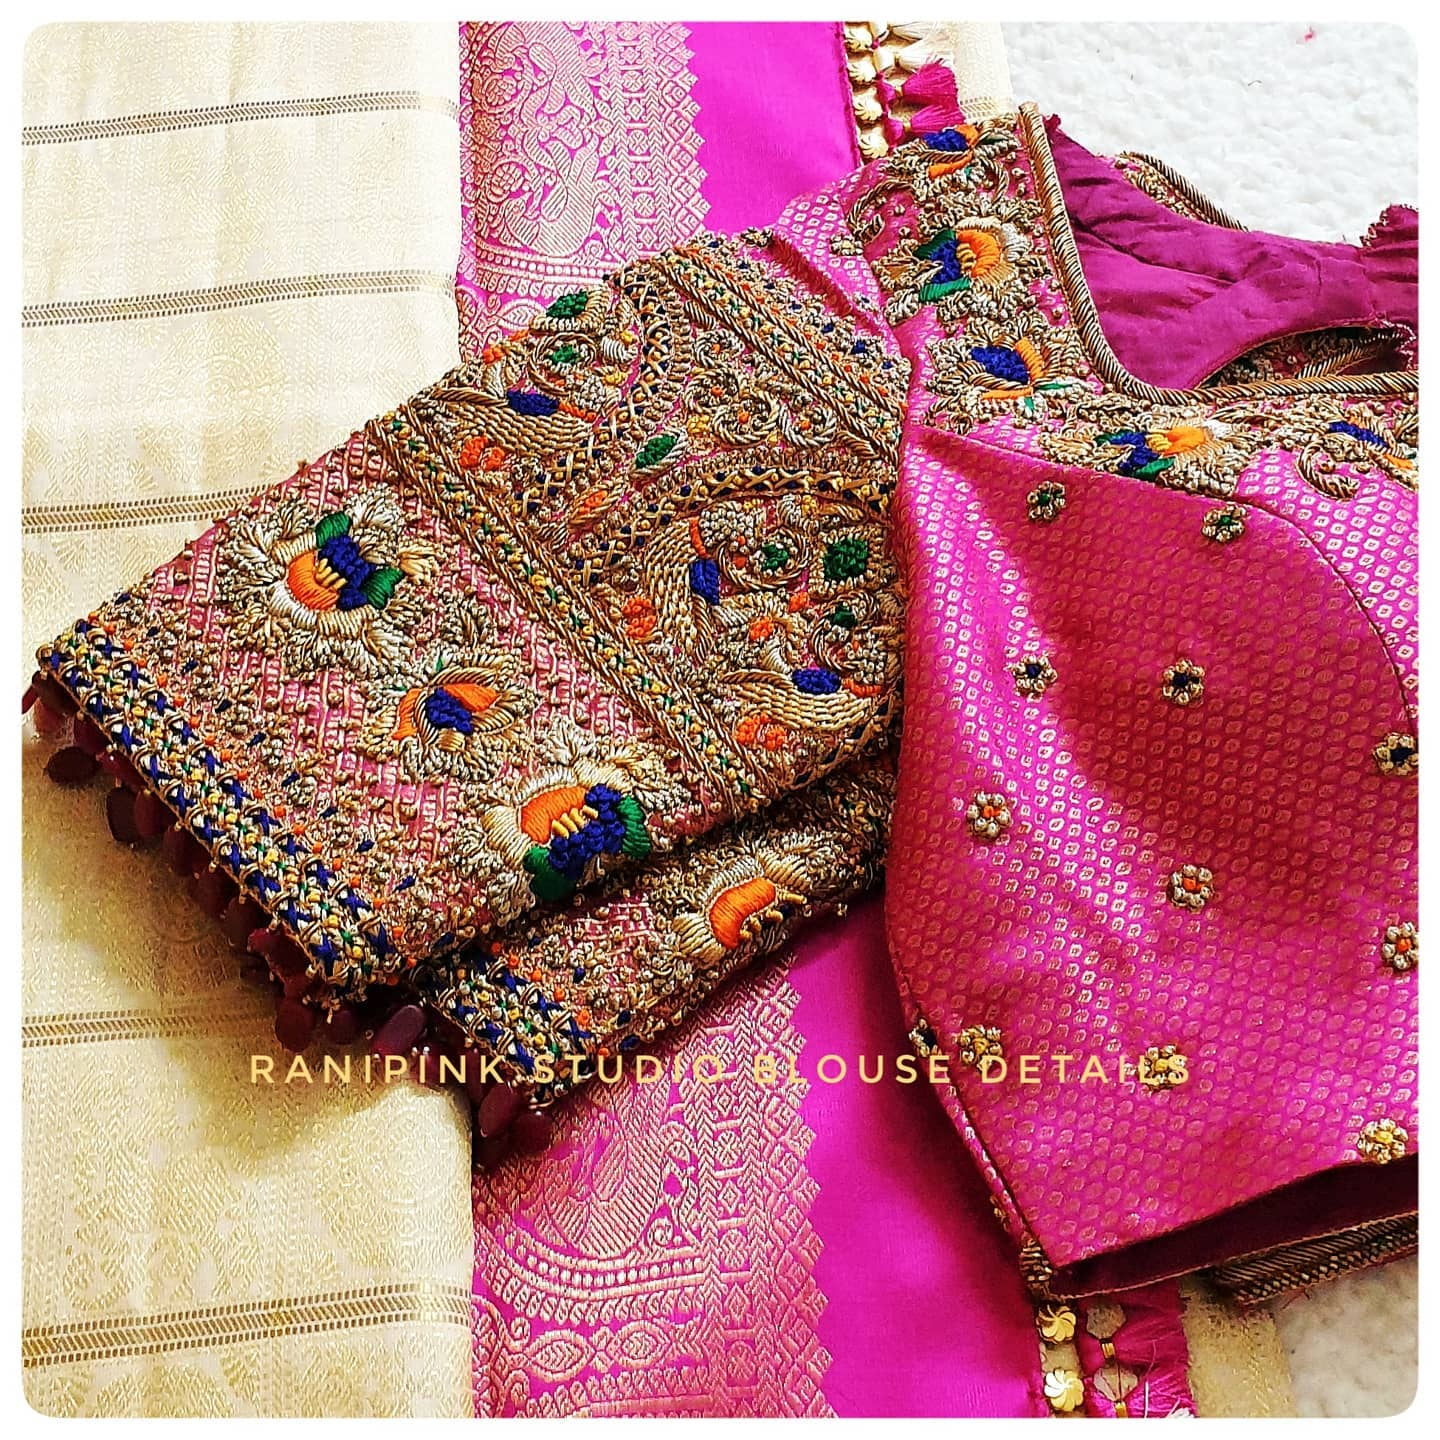 Details of Muhurutham Blouse. Stunning pink brocade wedding blouse with  floral and peacock bead and thread maggam work. 2021-04-15